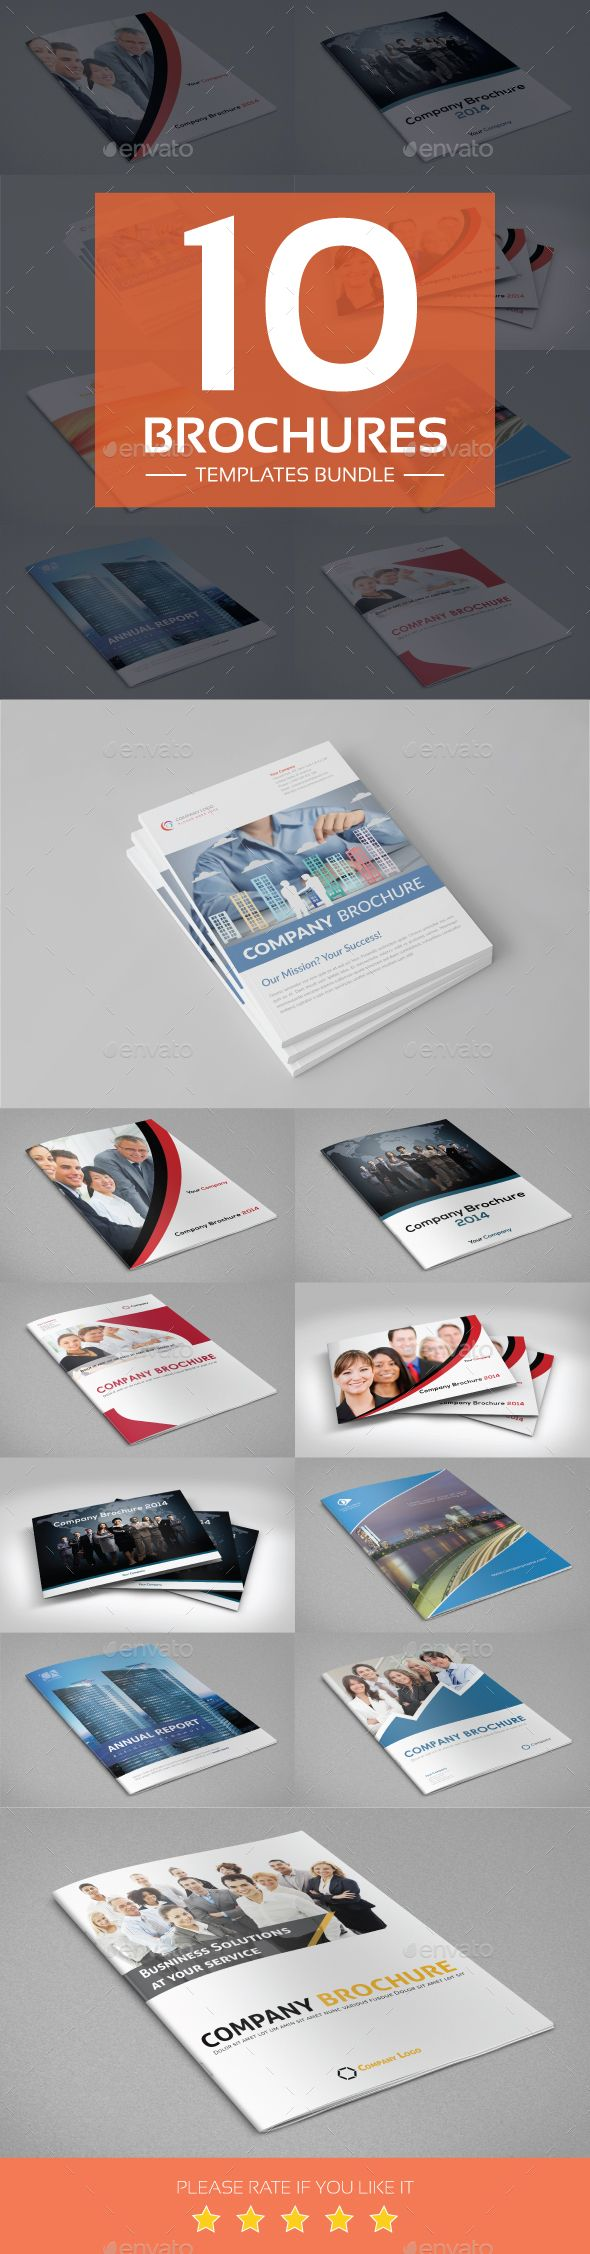 The 126 best brochure templates images on pinterest brochure brochures templates bundle accmission Images